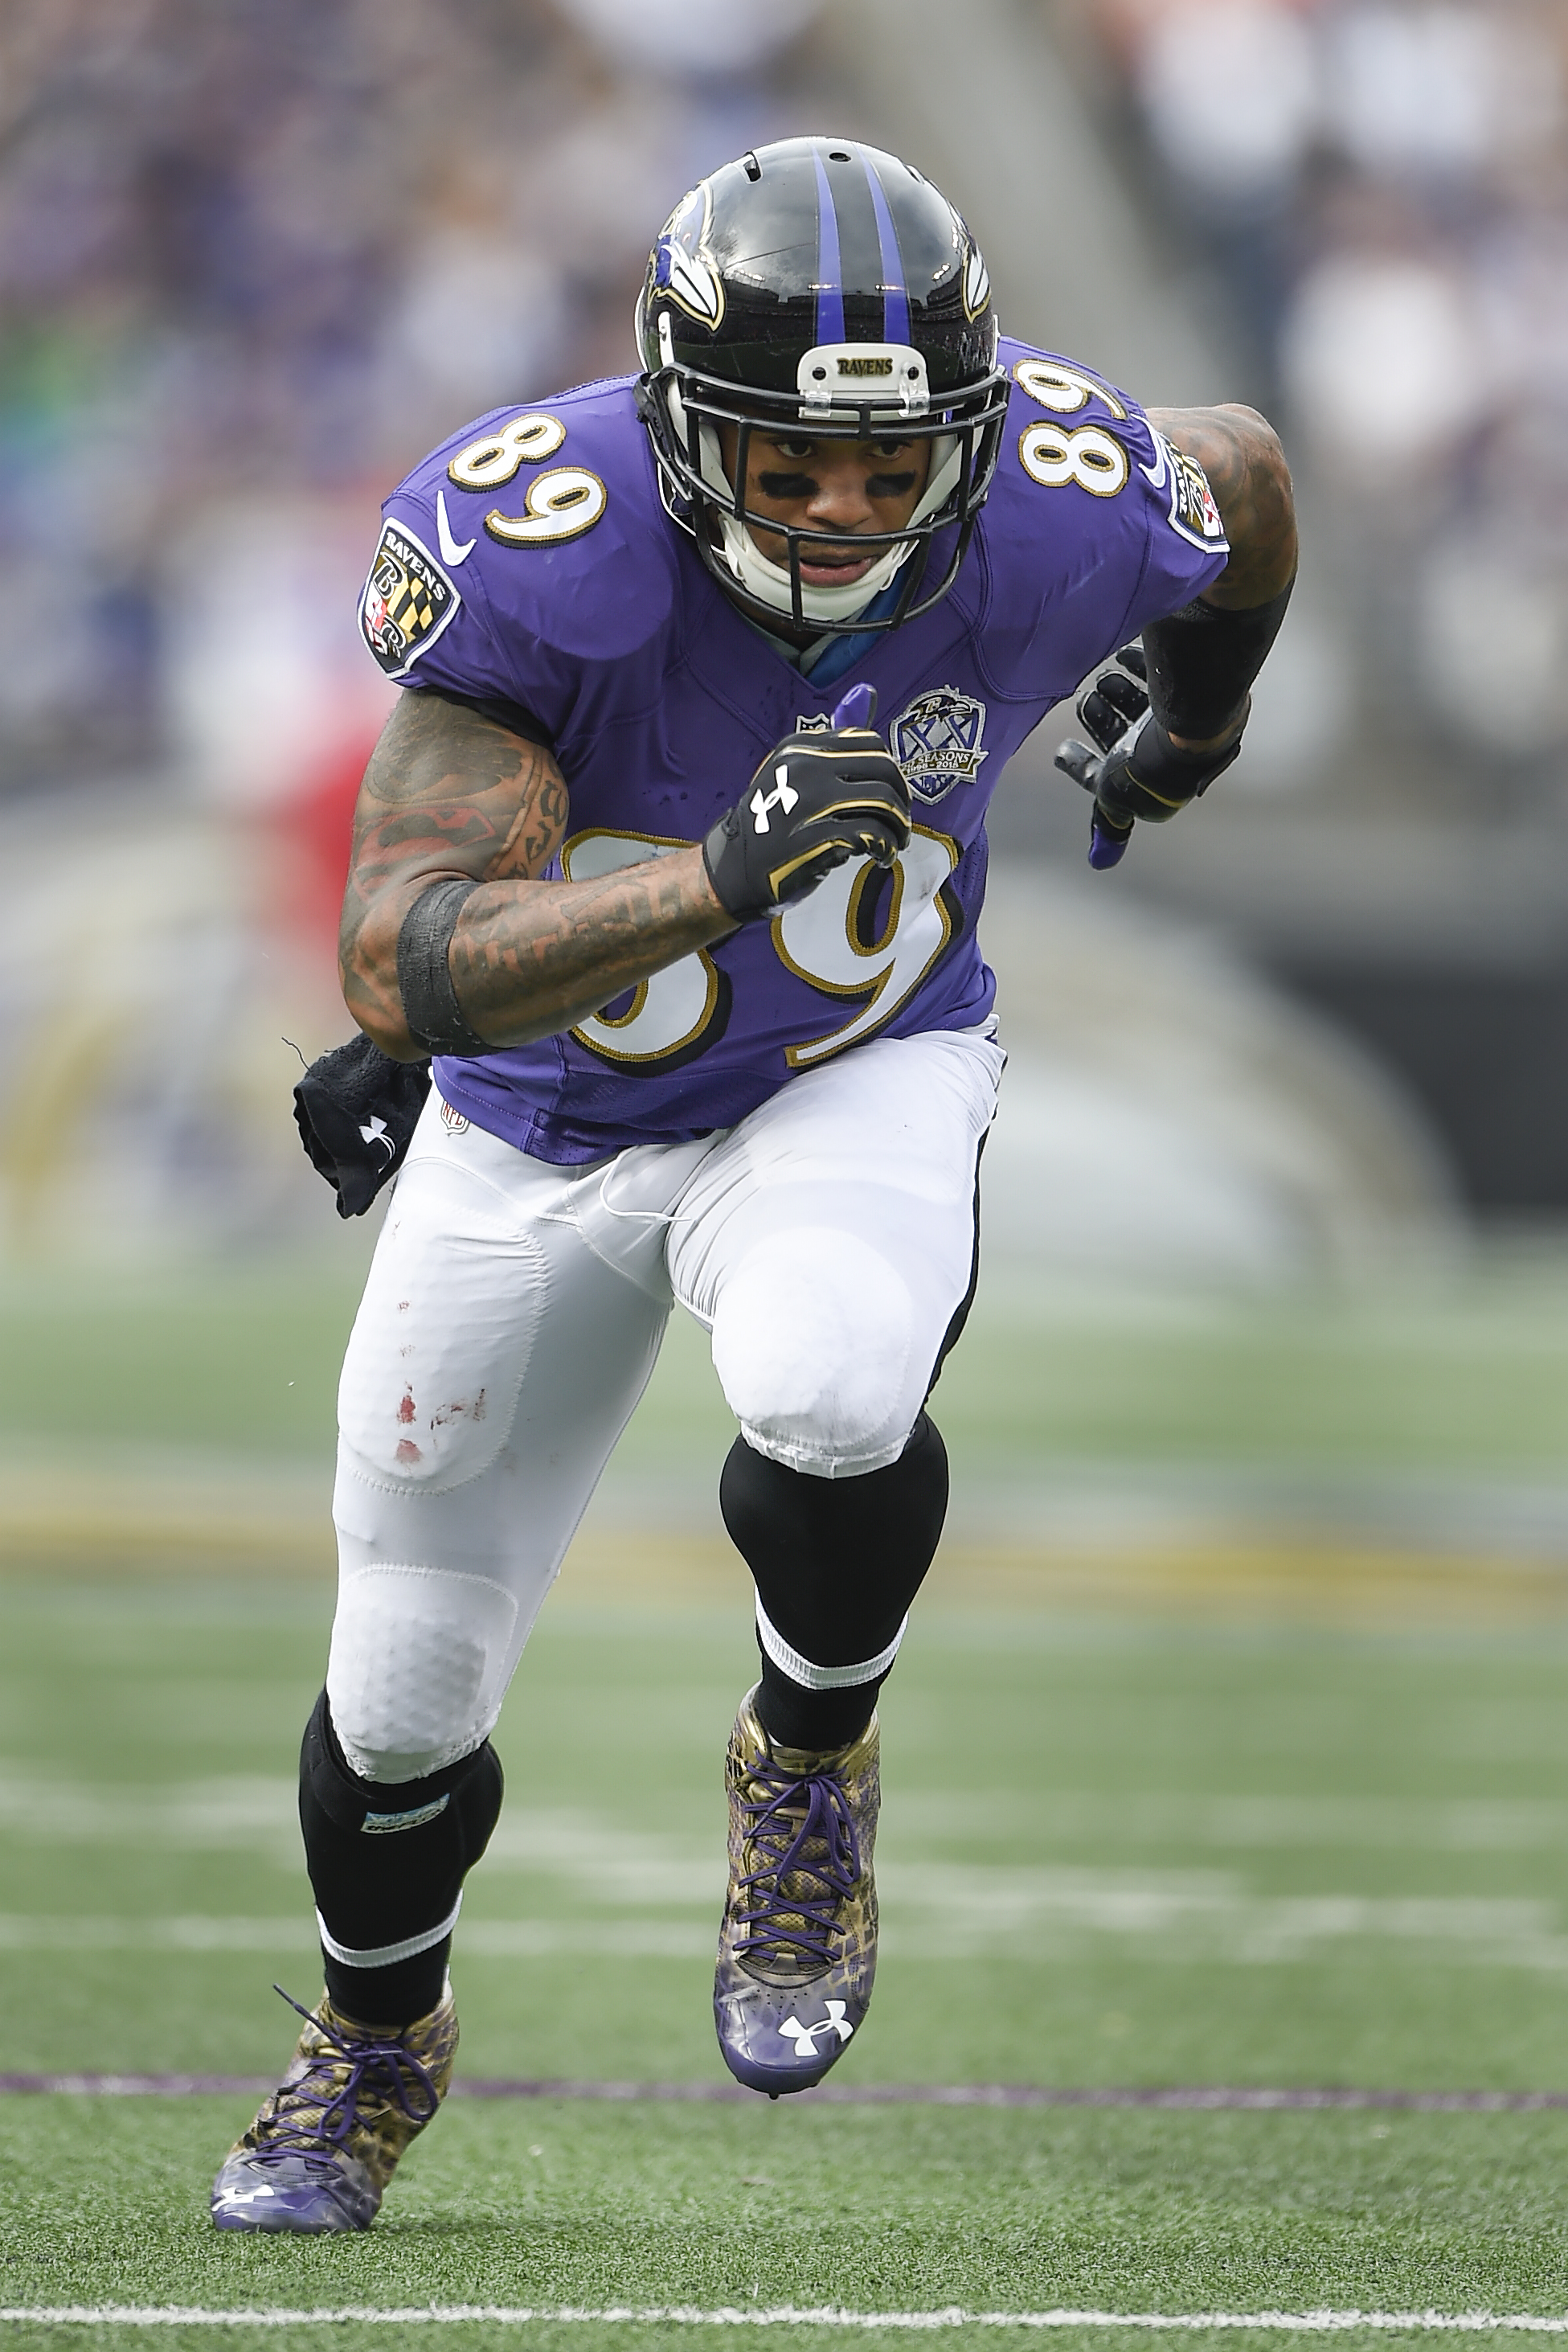 Baltimore Ravens wide receiver Steve Smith (89) is action during the first half of an NFL football game against the San Diego Chargers in Baltimore, Sunday, Nov. 1, 2015. (AP Photo/Nick Wass)